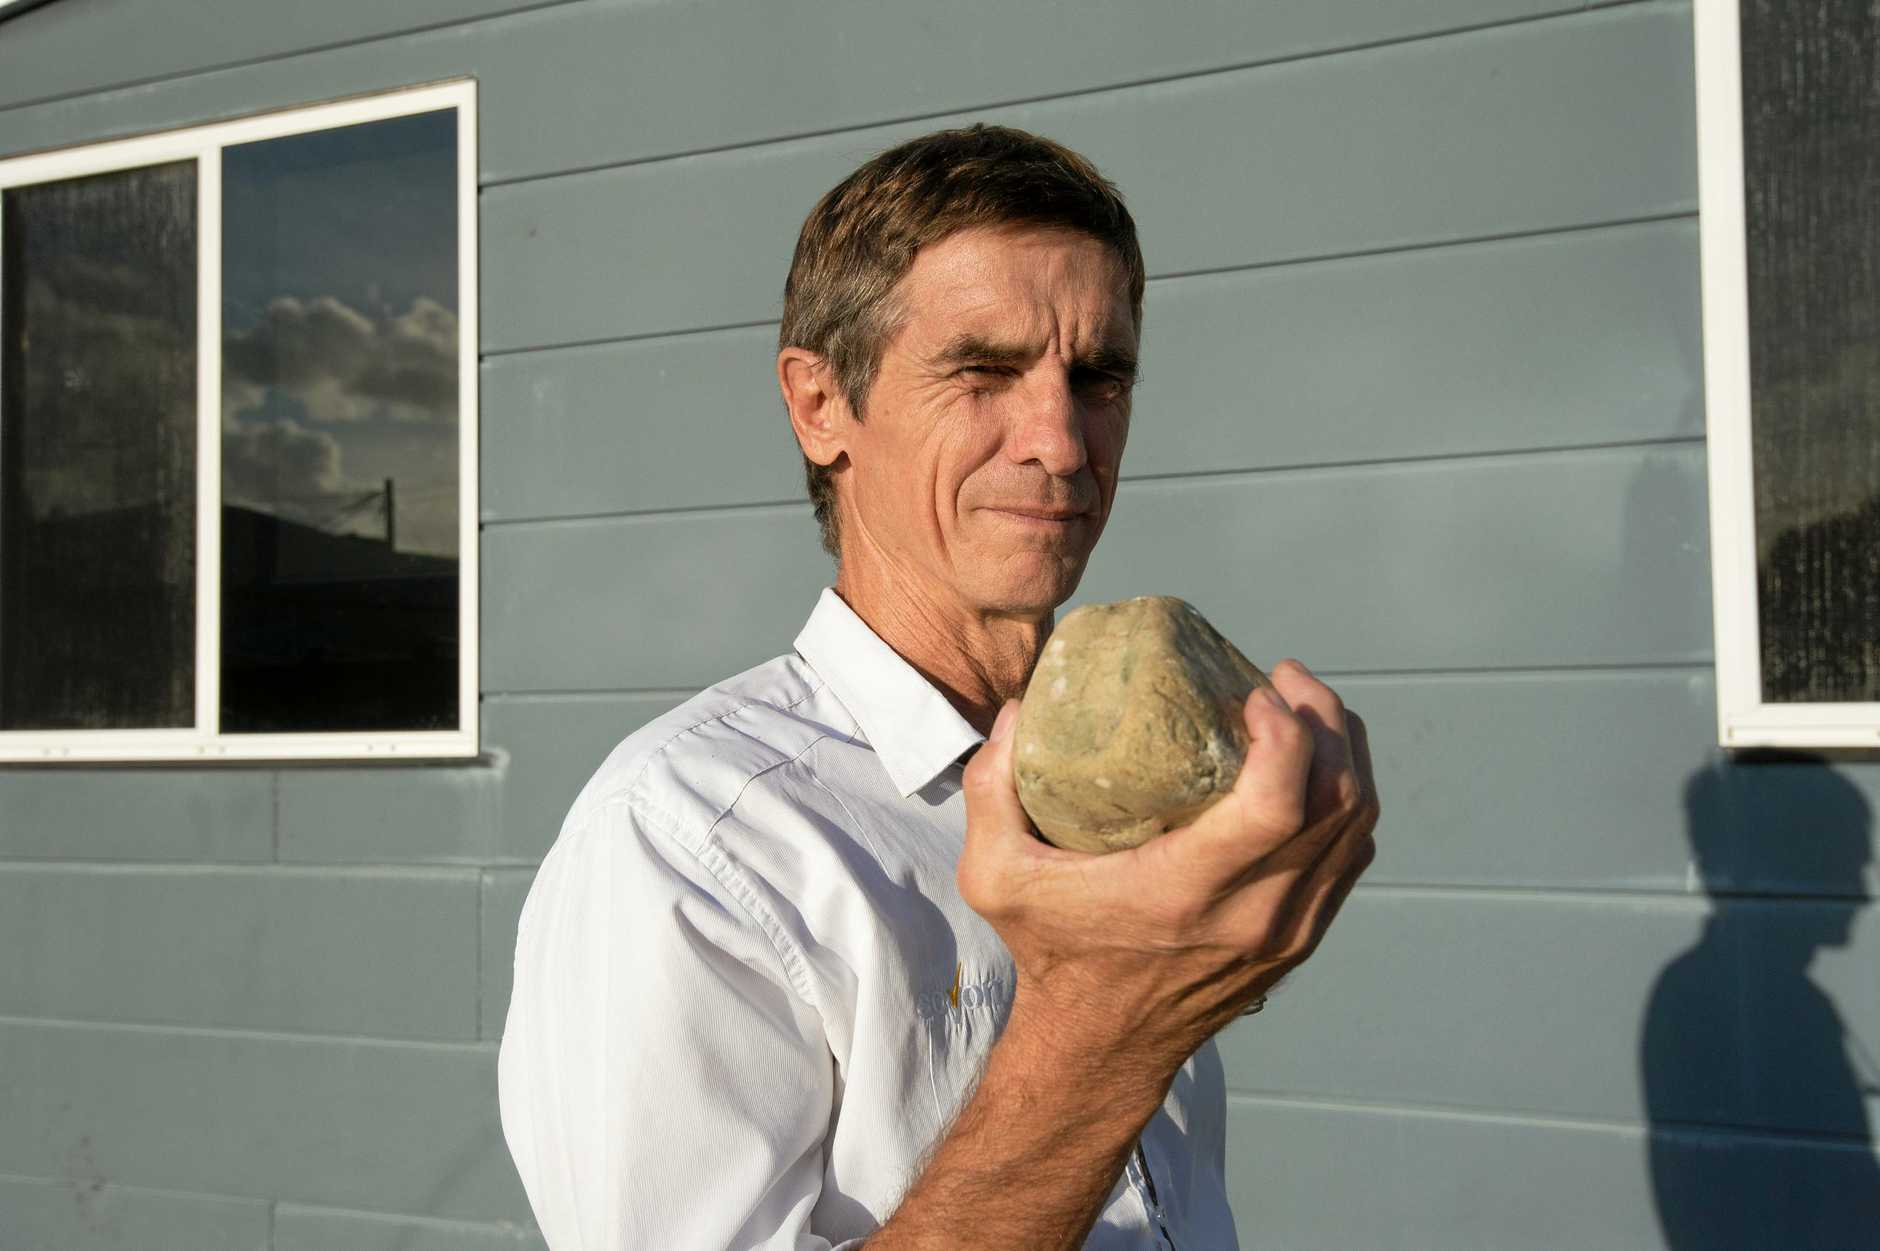 Brian Hopwood with the rock used to damage his premises. 01 MAY 2018